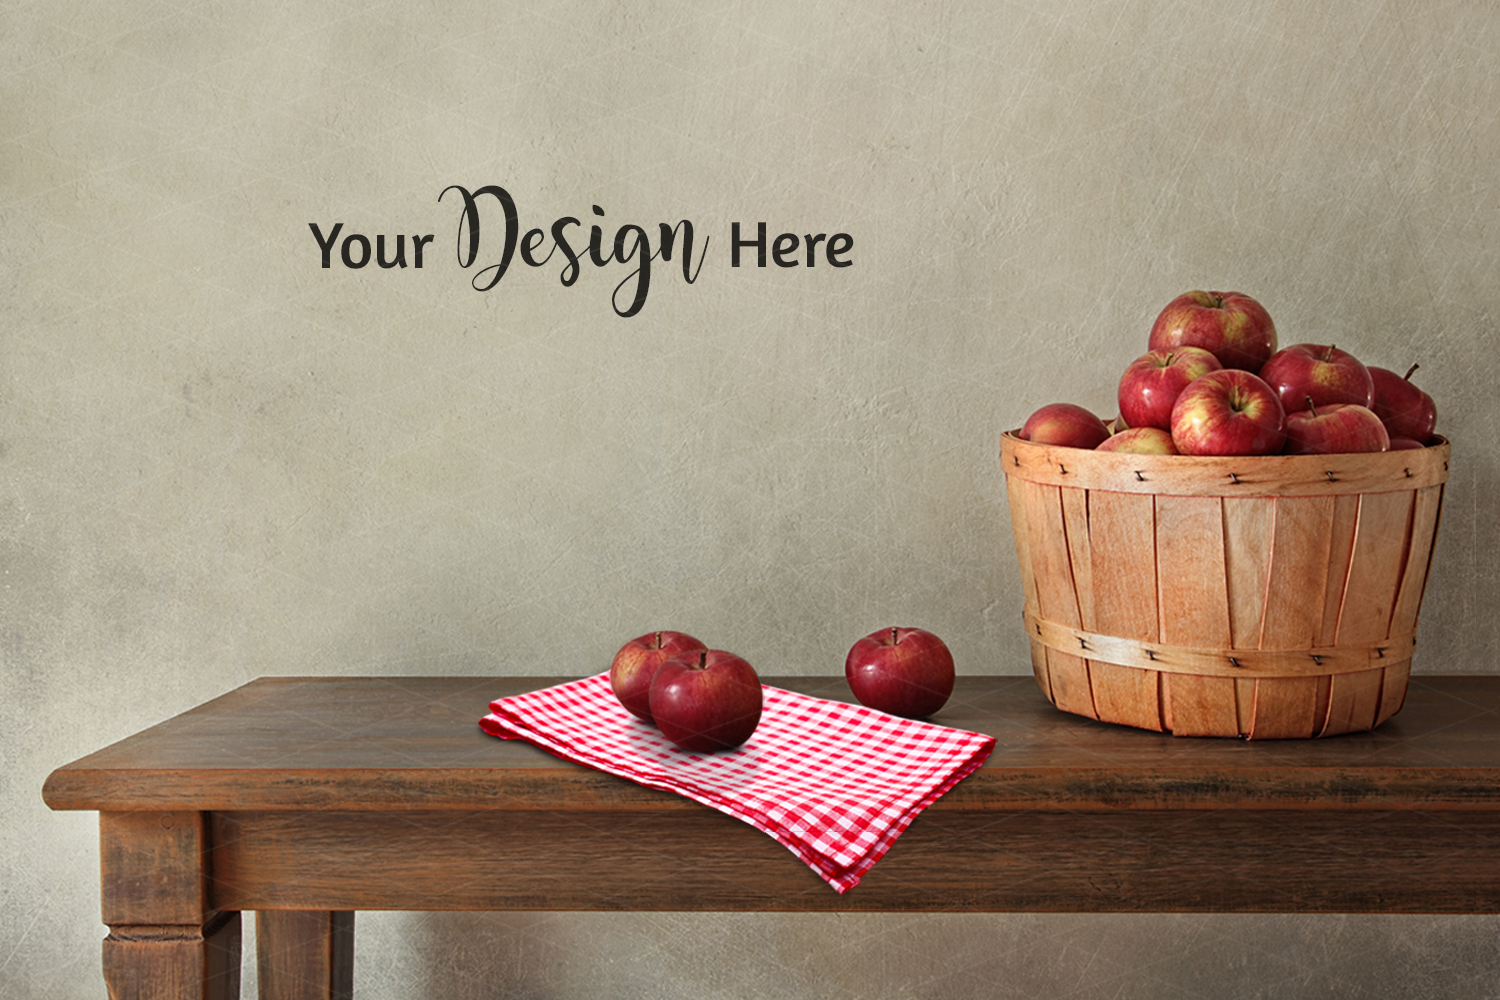 Farmhouse Blank Wall Mockup, Rustic Table Apples 3.2 example image 2